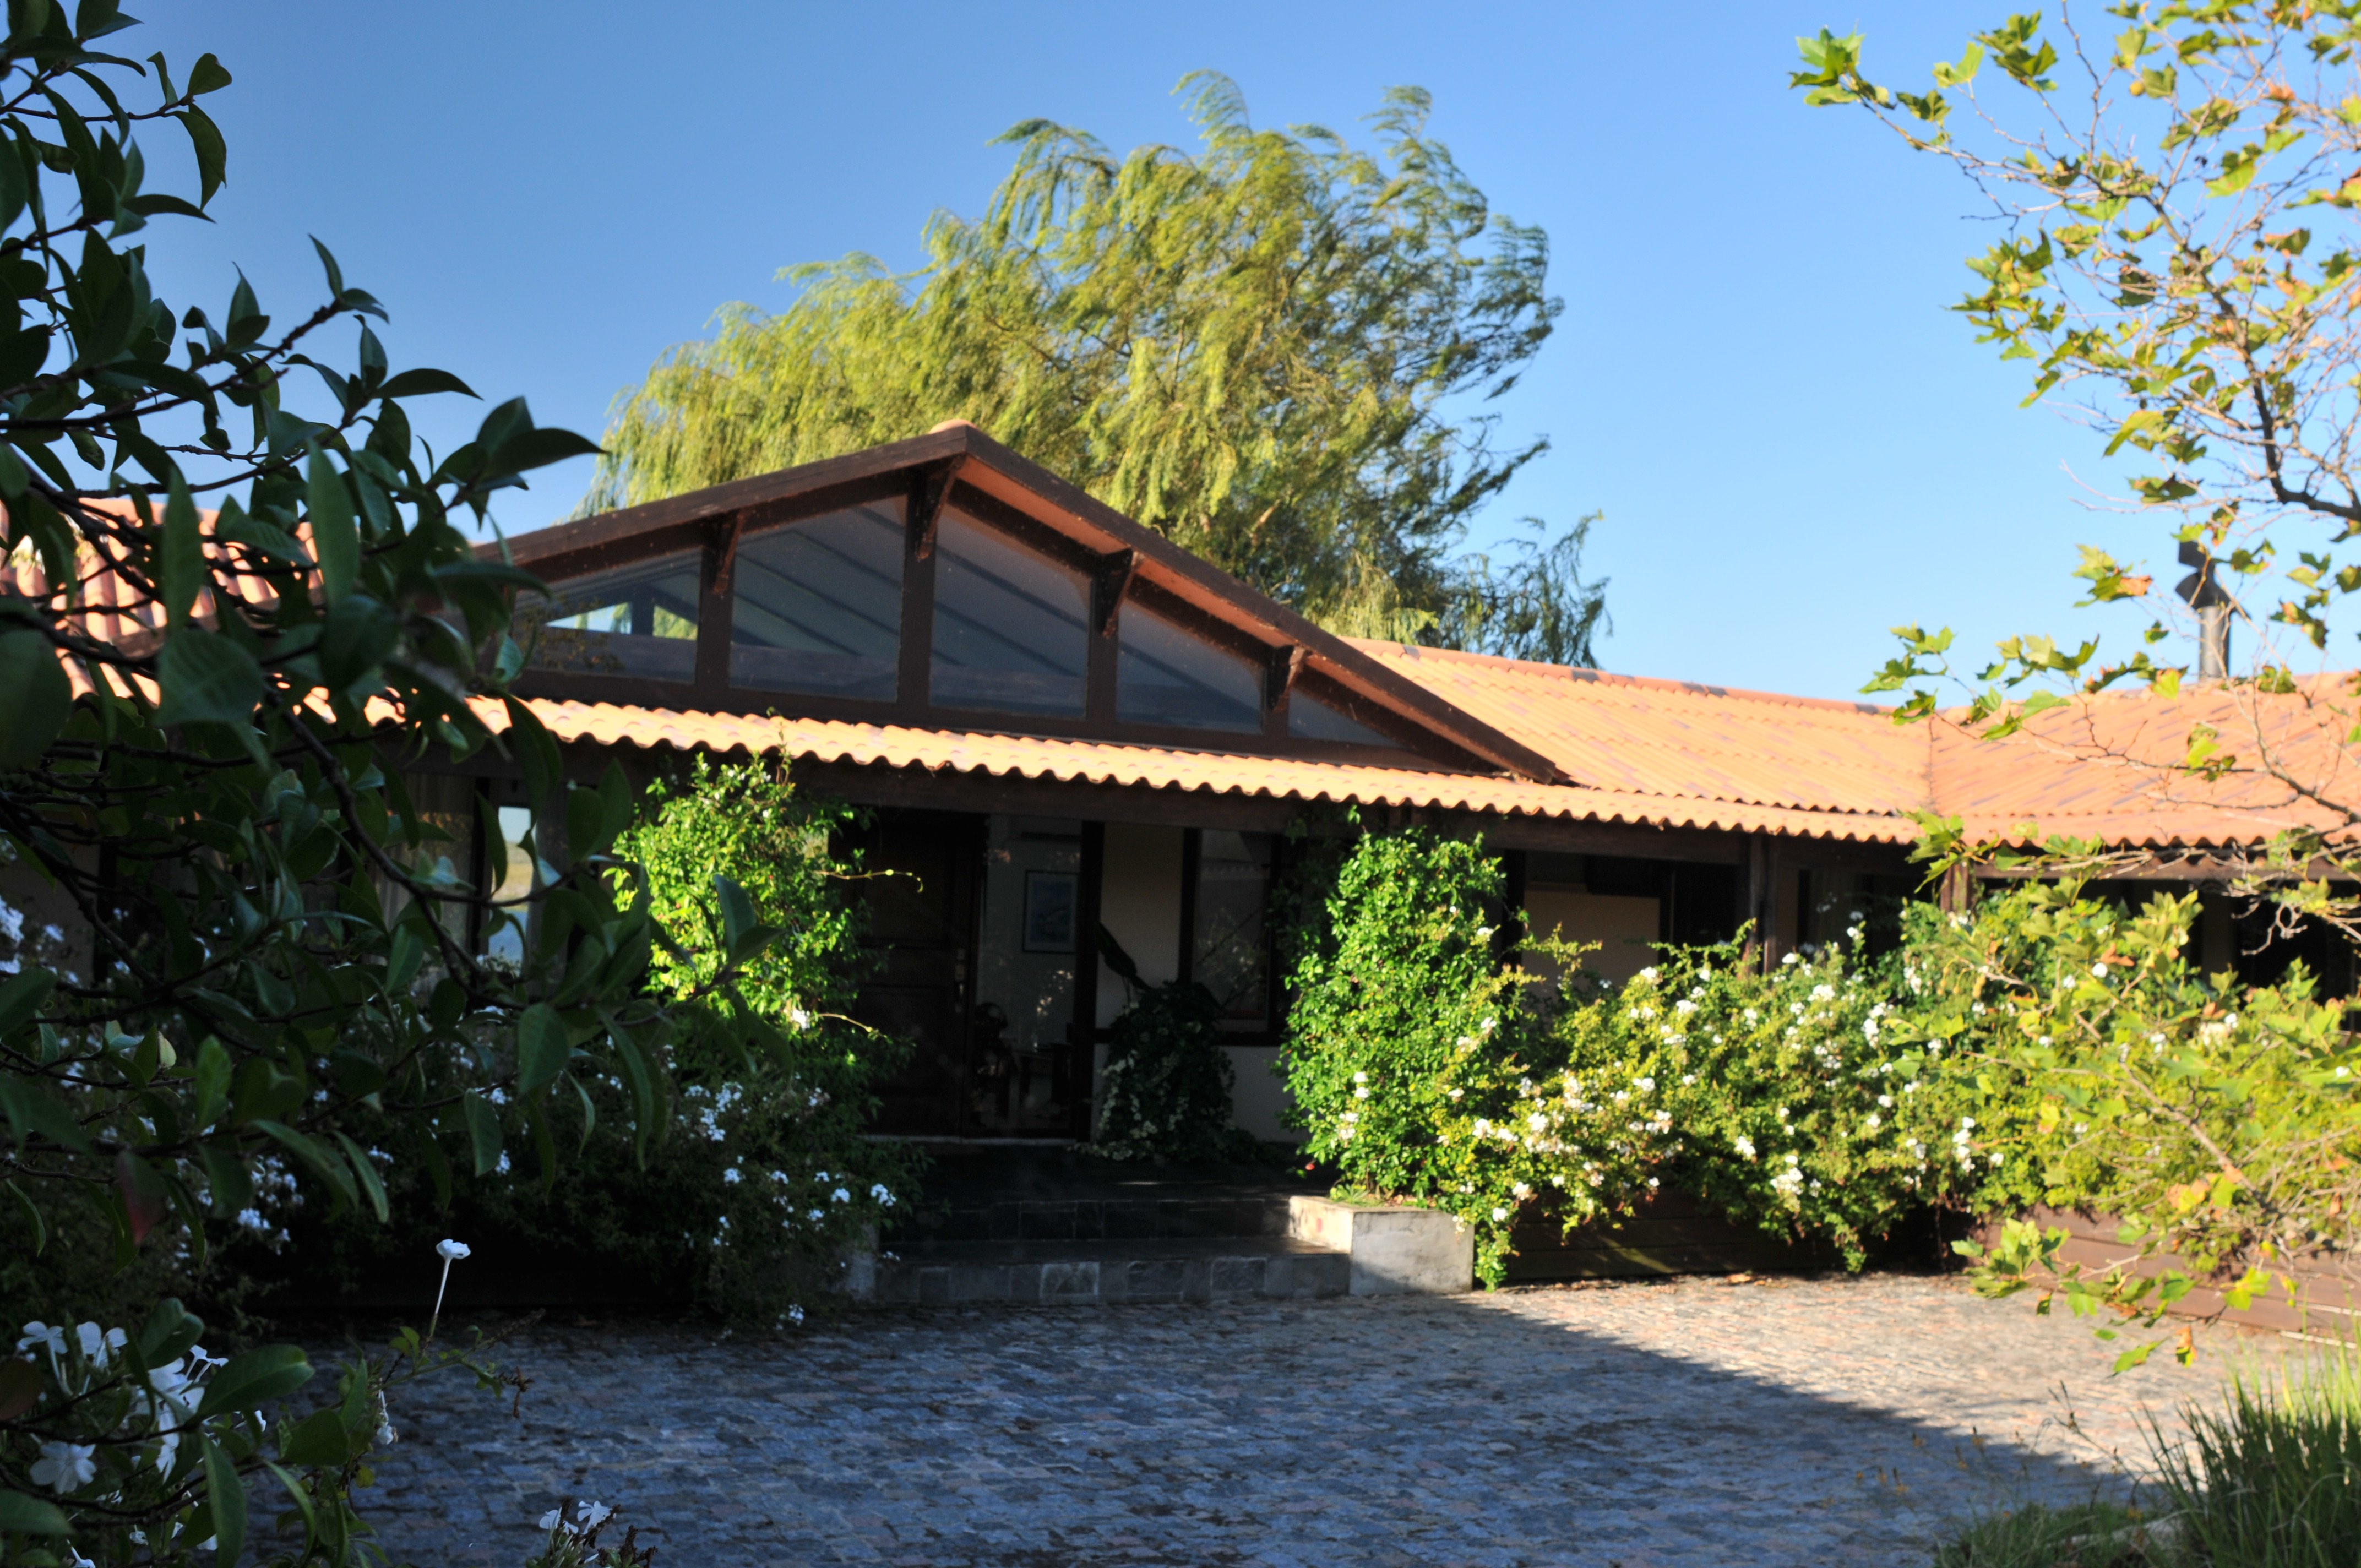 Single Family Home for Sale at Laguna Retreat Other Maldonado, Maldonado, Uruguay